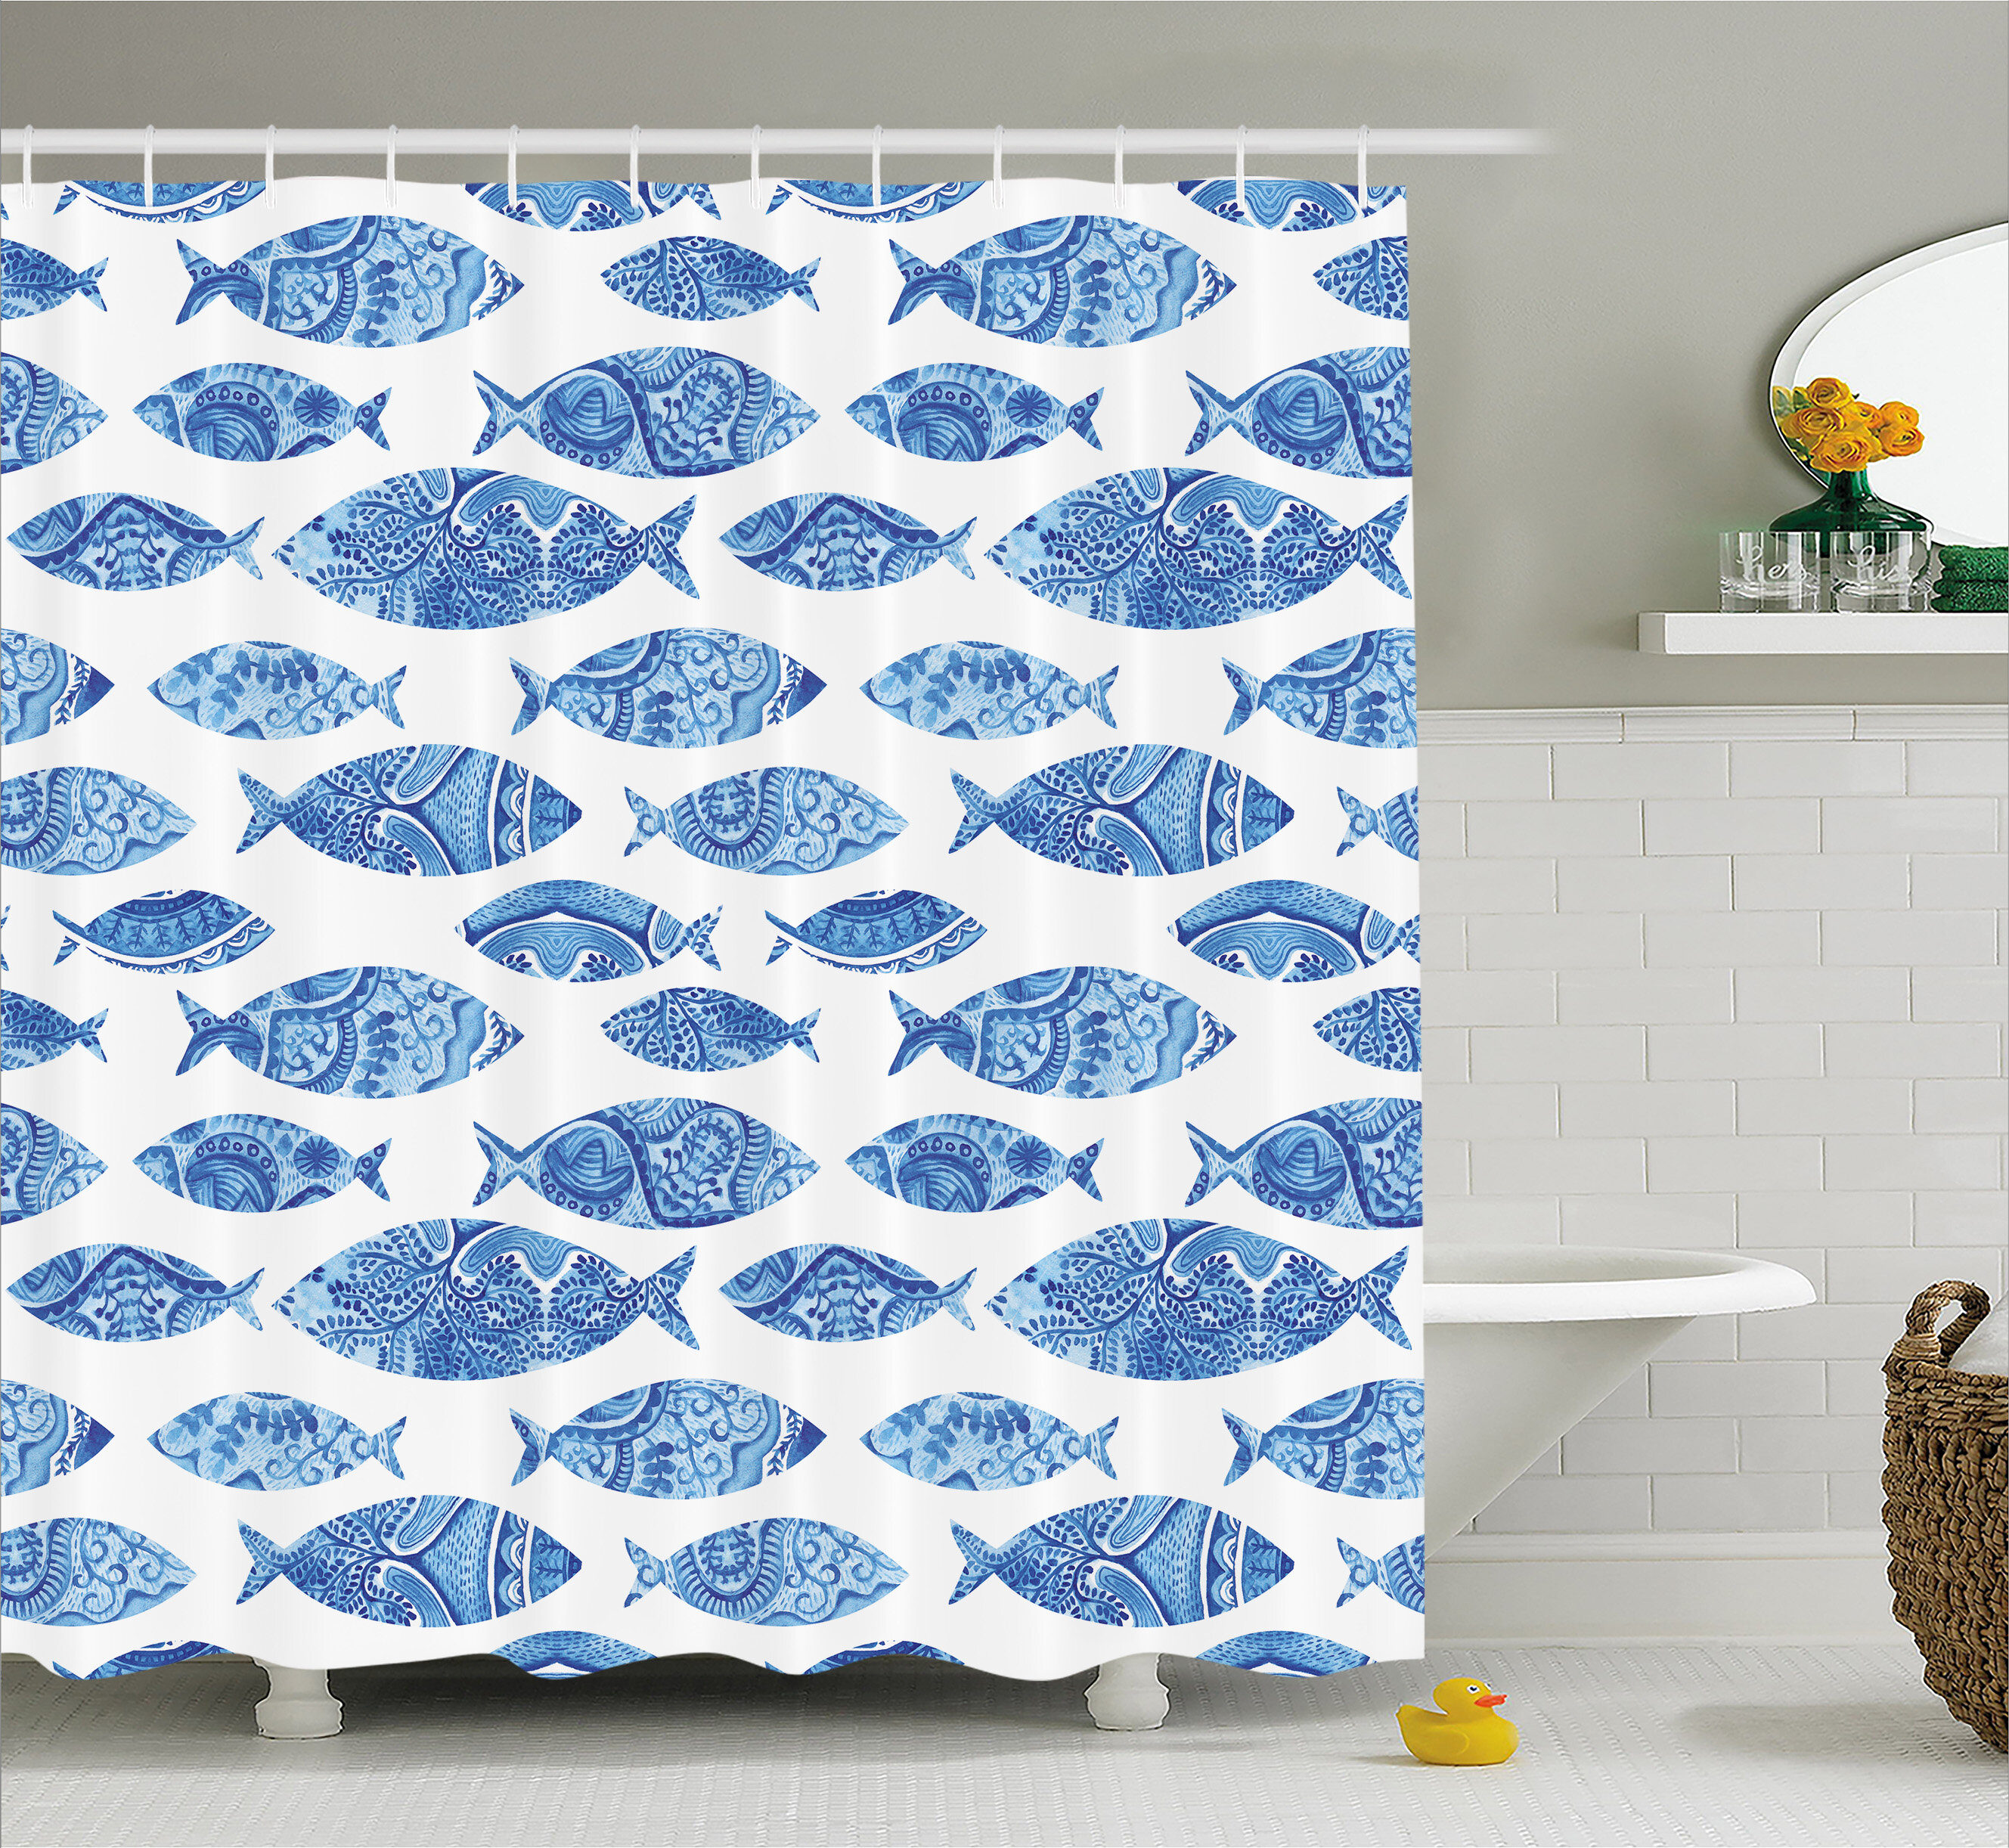 Rosecliff Heights Kentshire Mosaic Fish Decor Shower Curtain